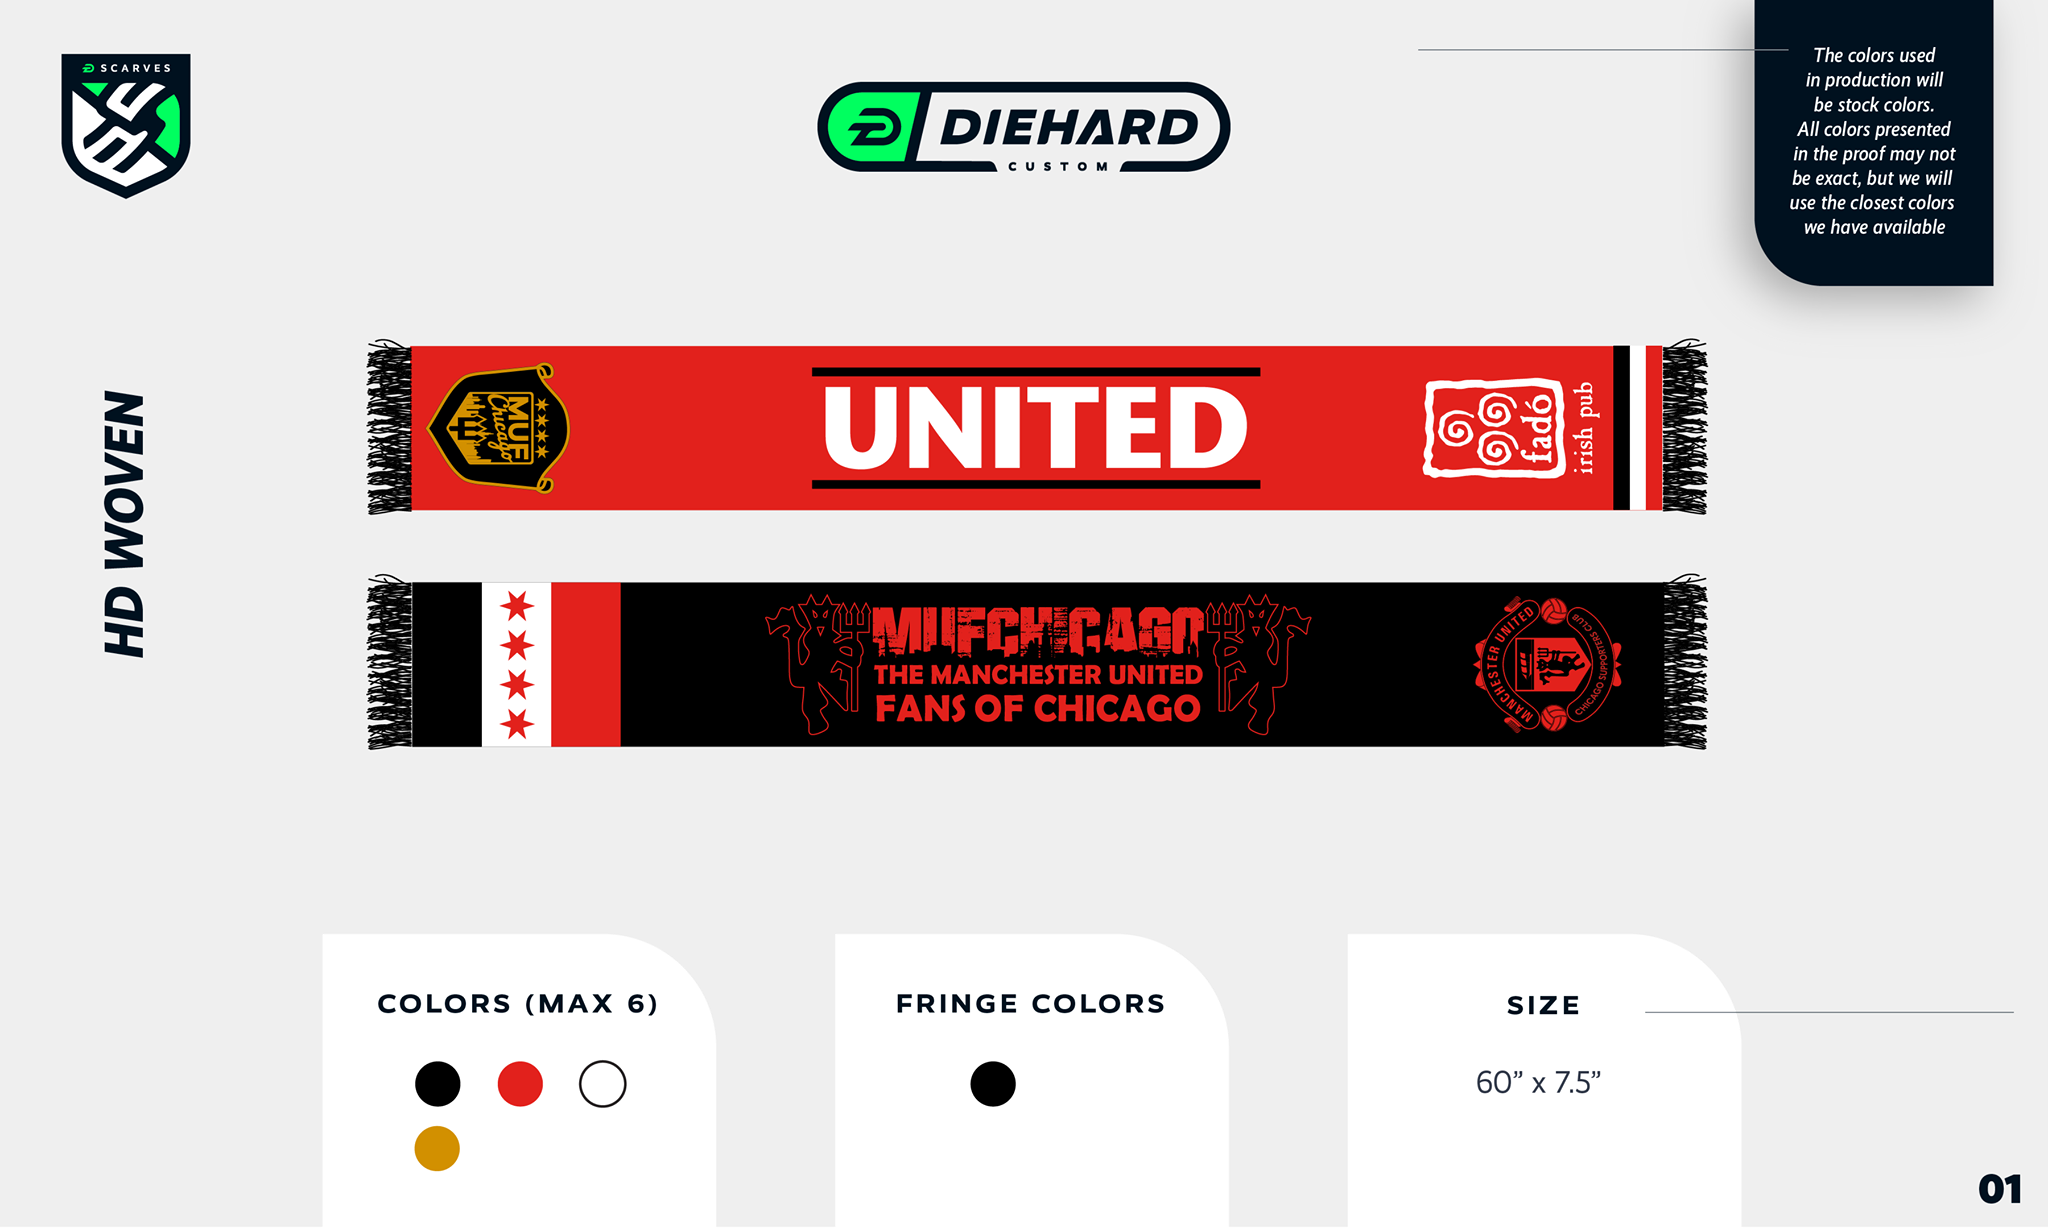 Diehard Scarves customized scarf proof template for MUFChicago